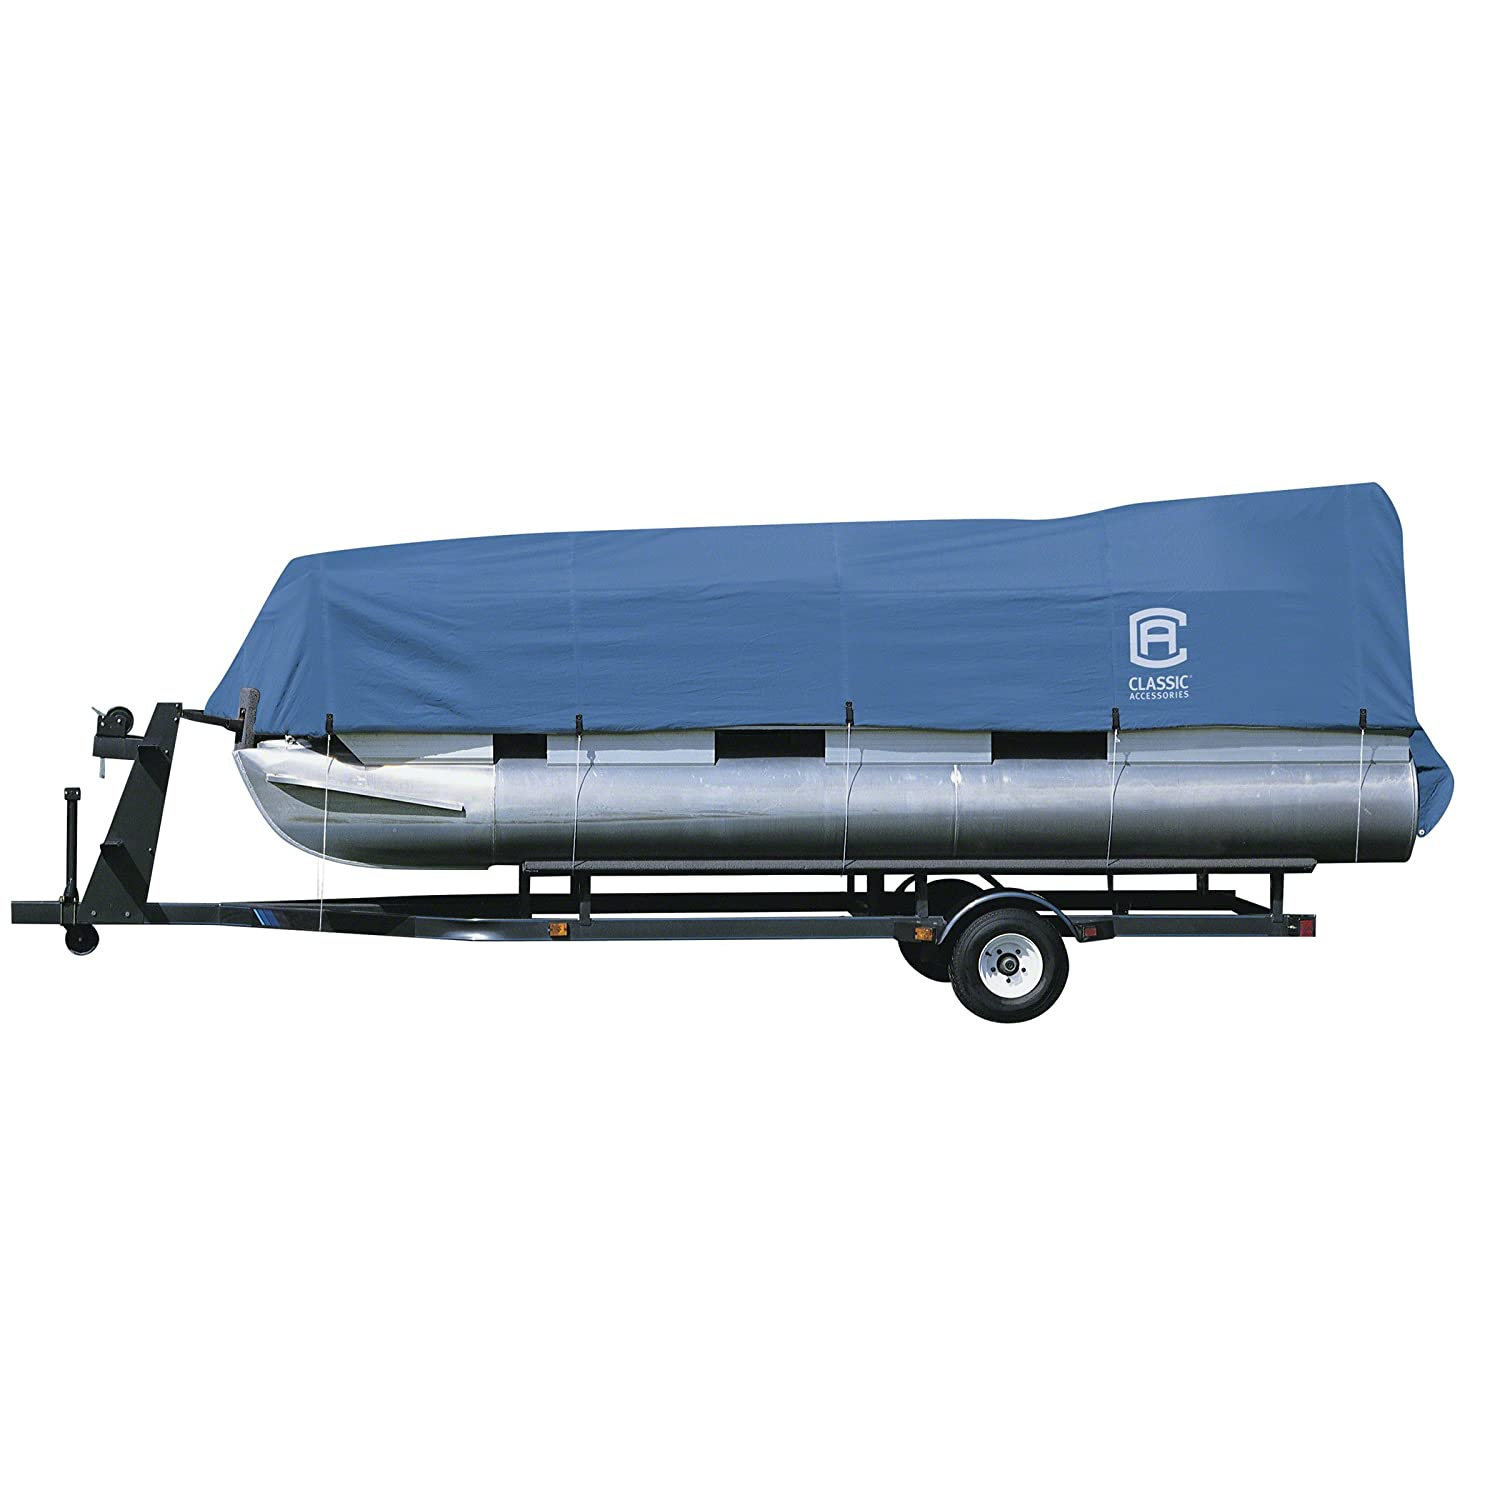 Classic Accessories Stellex All Seasons Pontoon Boat Cover, Blue